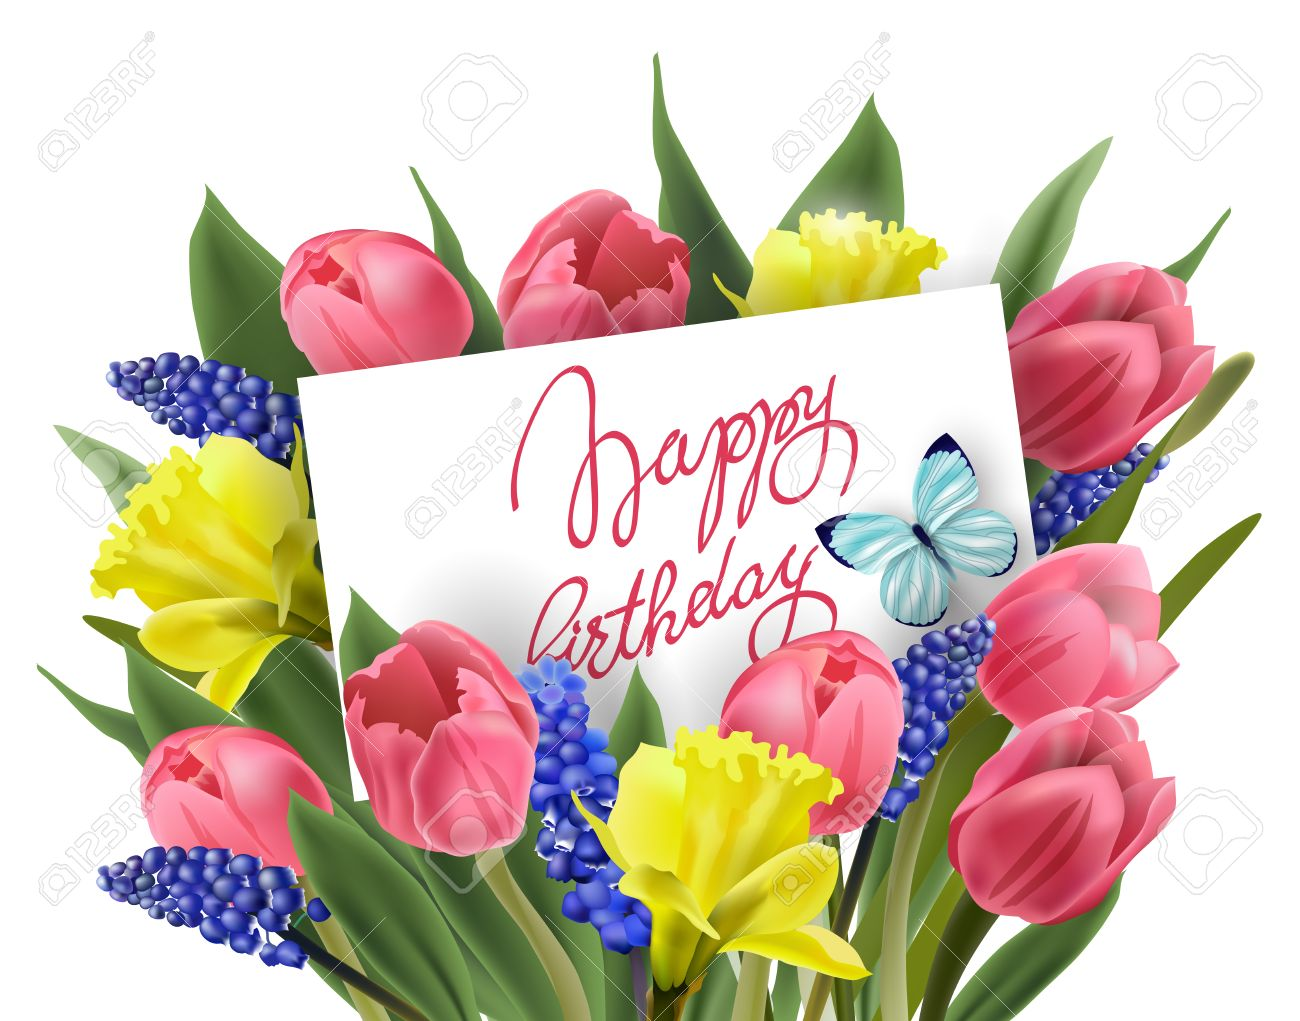 Happy Birthday Greeting Card With Bouquet Of Spring Flowers Tulips Daffodils MuscariVector